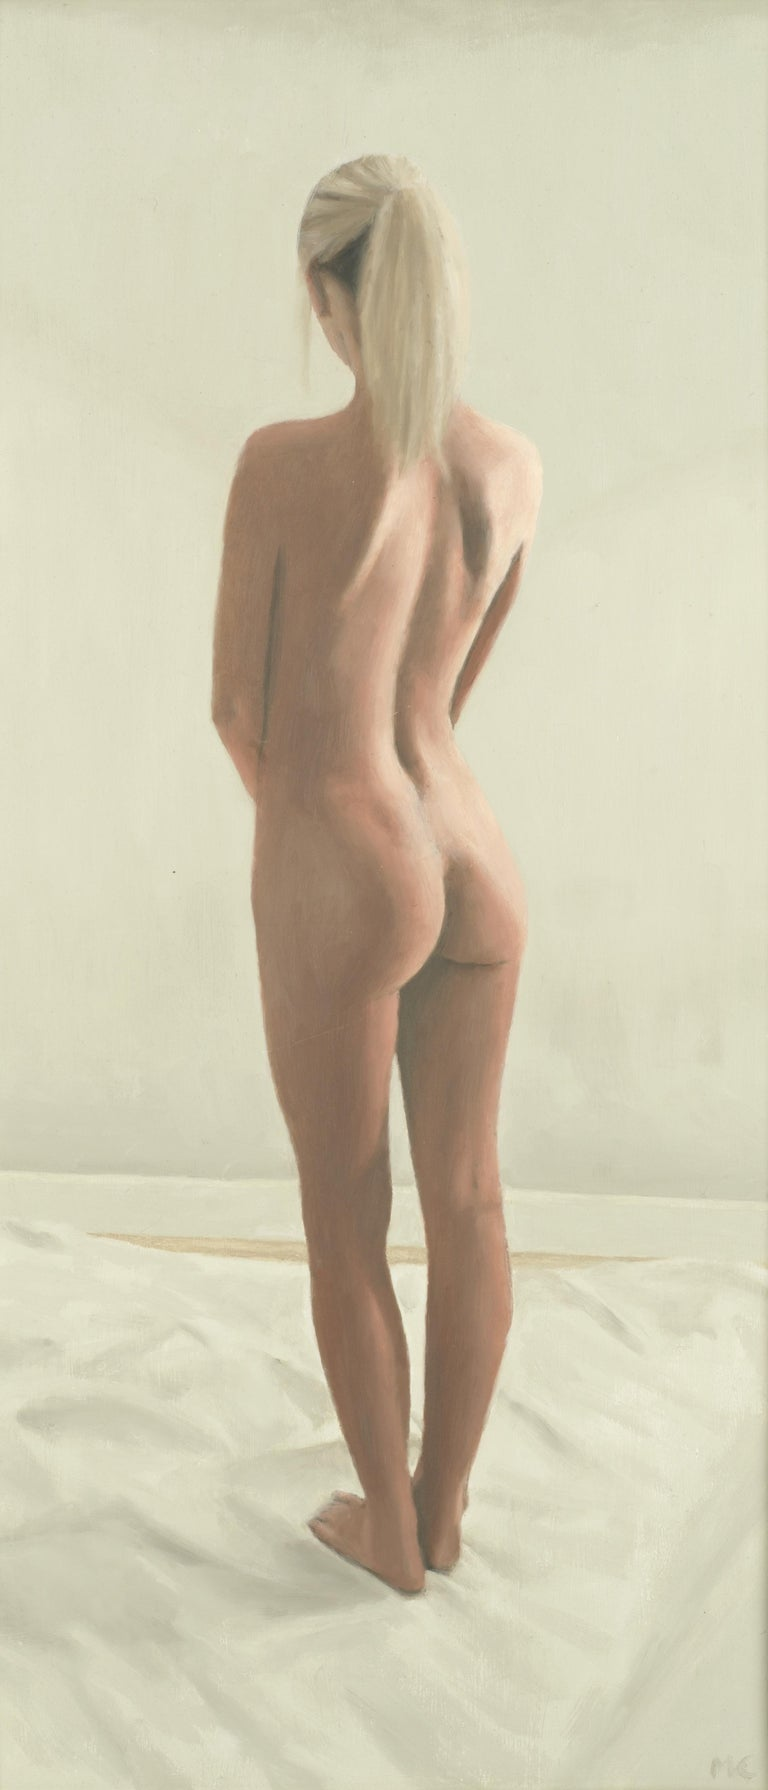 Oil Painting of Standing Female Nude Figure by British Contemporary Artist For Sale 2